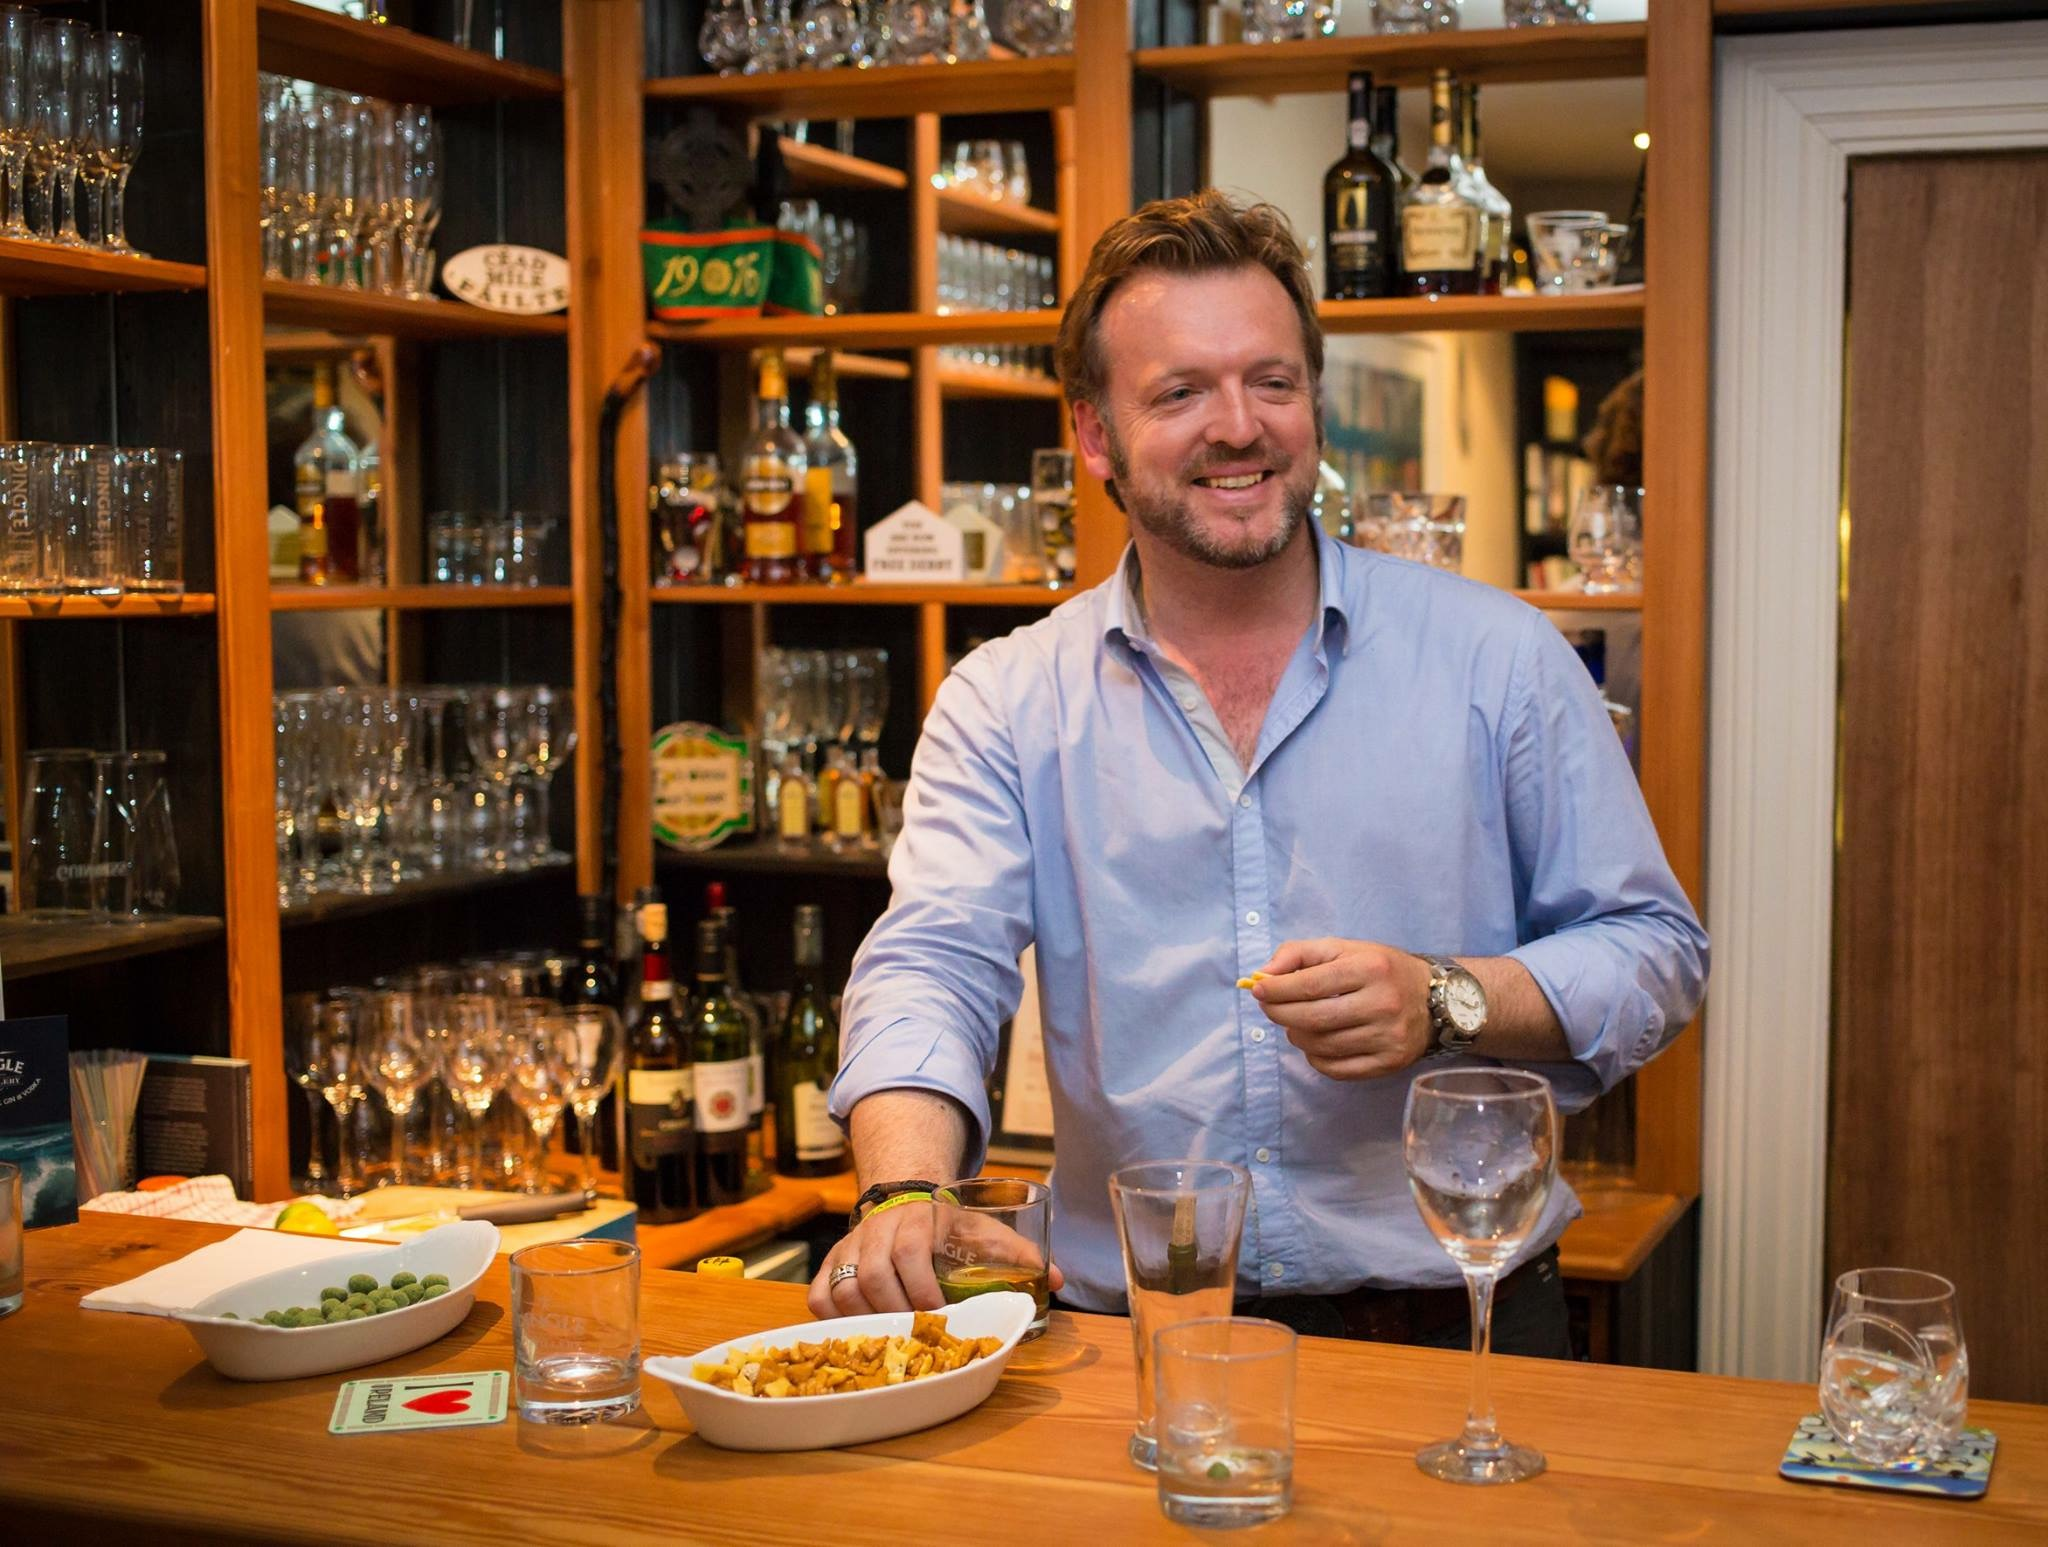 Essential Ireland Tour's chief guide Stephen McPhilemy, behind the bar at Milltown House in Dingle, Ireland